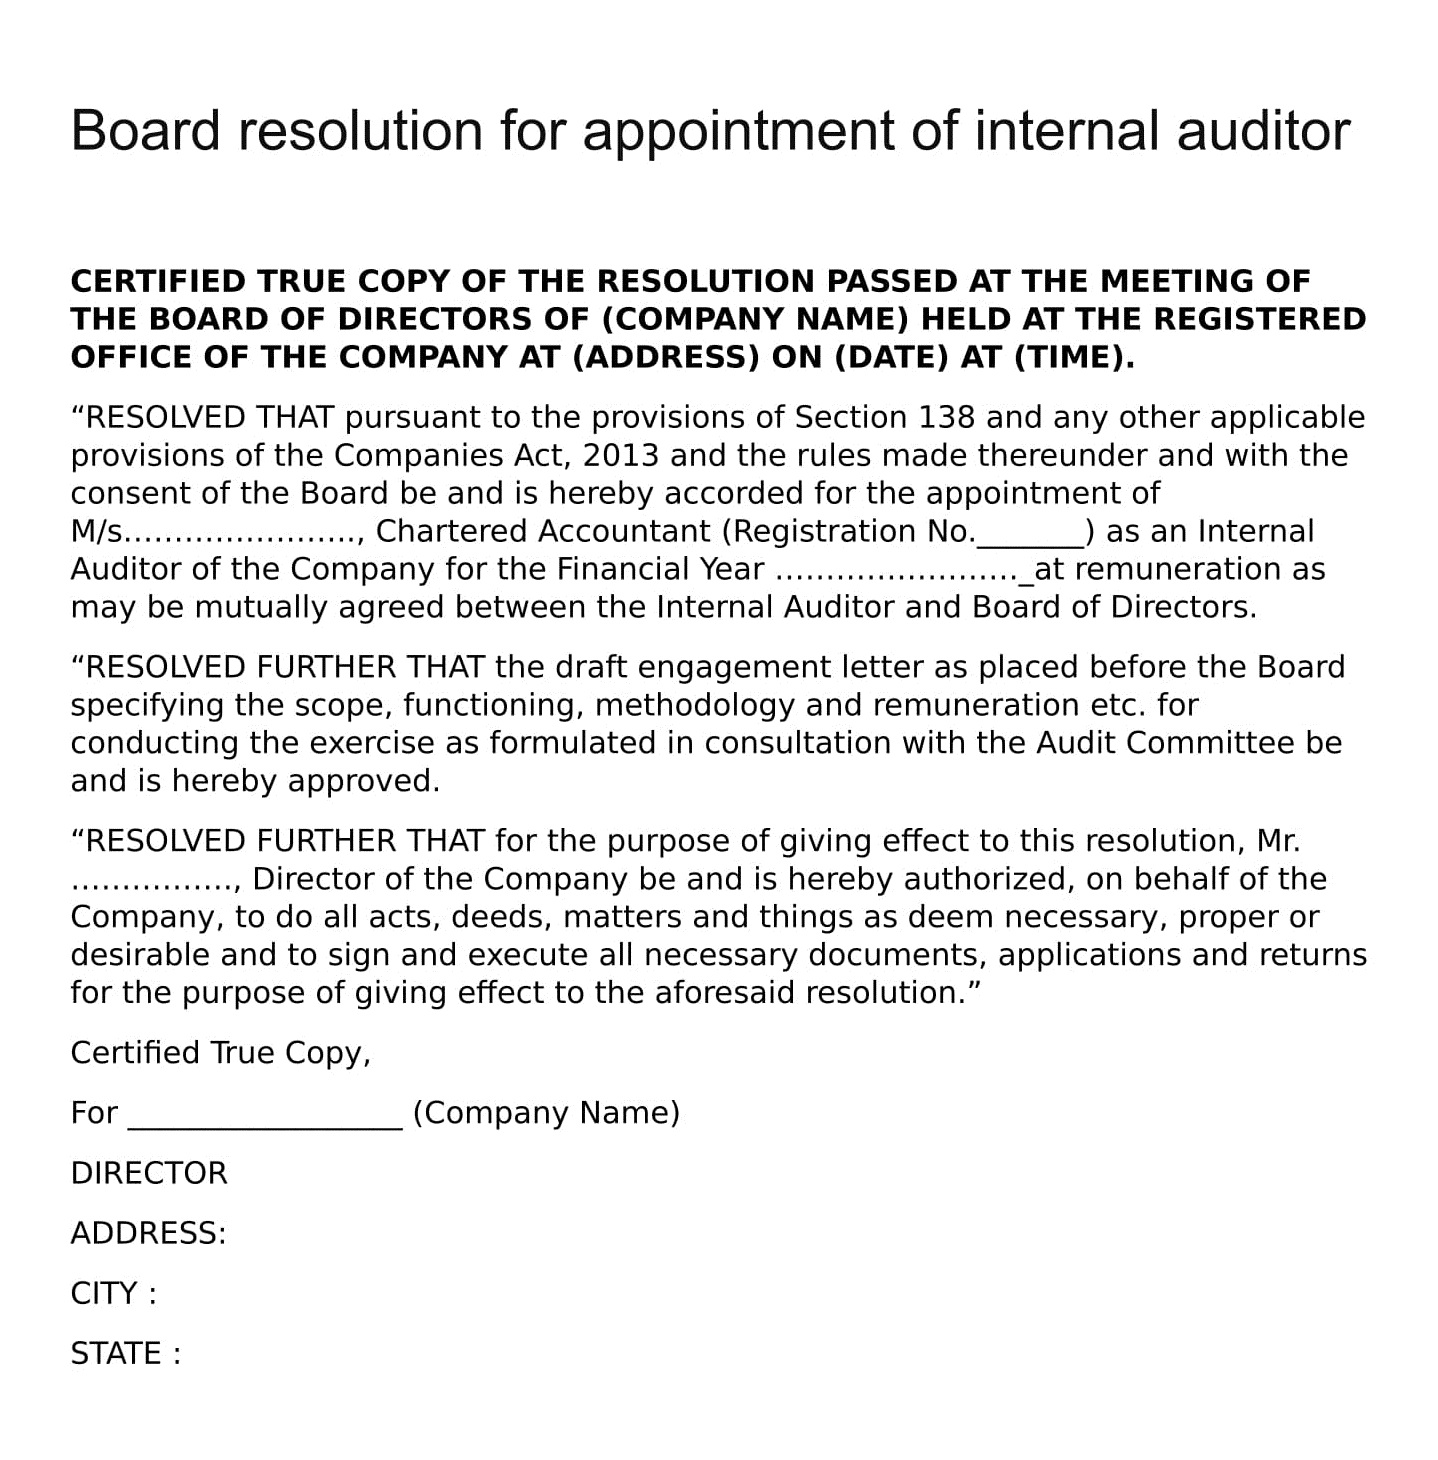 Board resolution for appointment of internal auditor-1.jpg